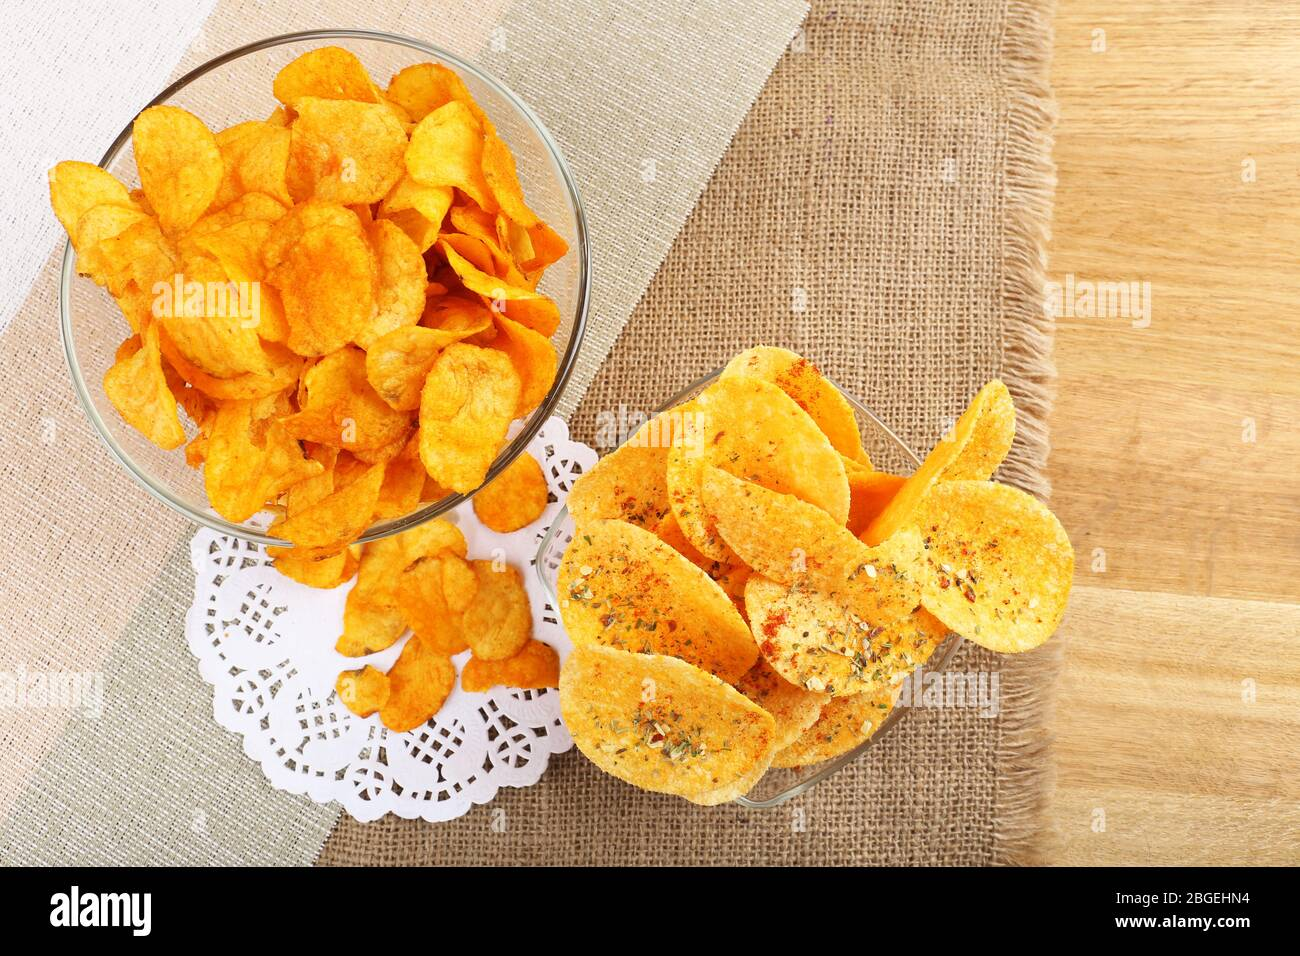 Homemade potato chips in glass bowls on table Stock Photo